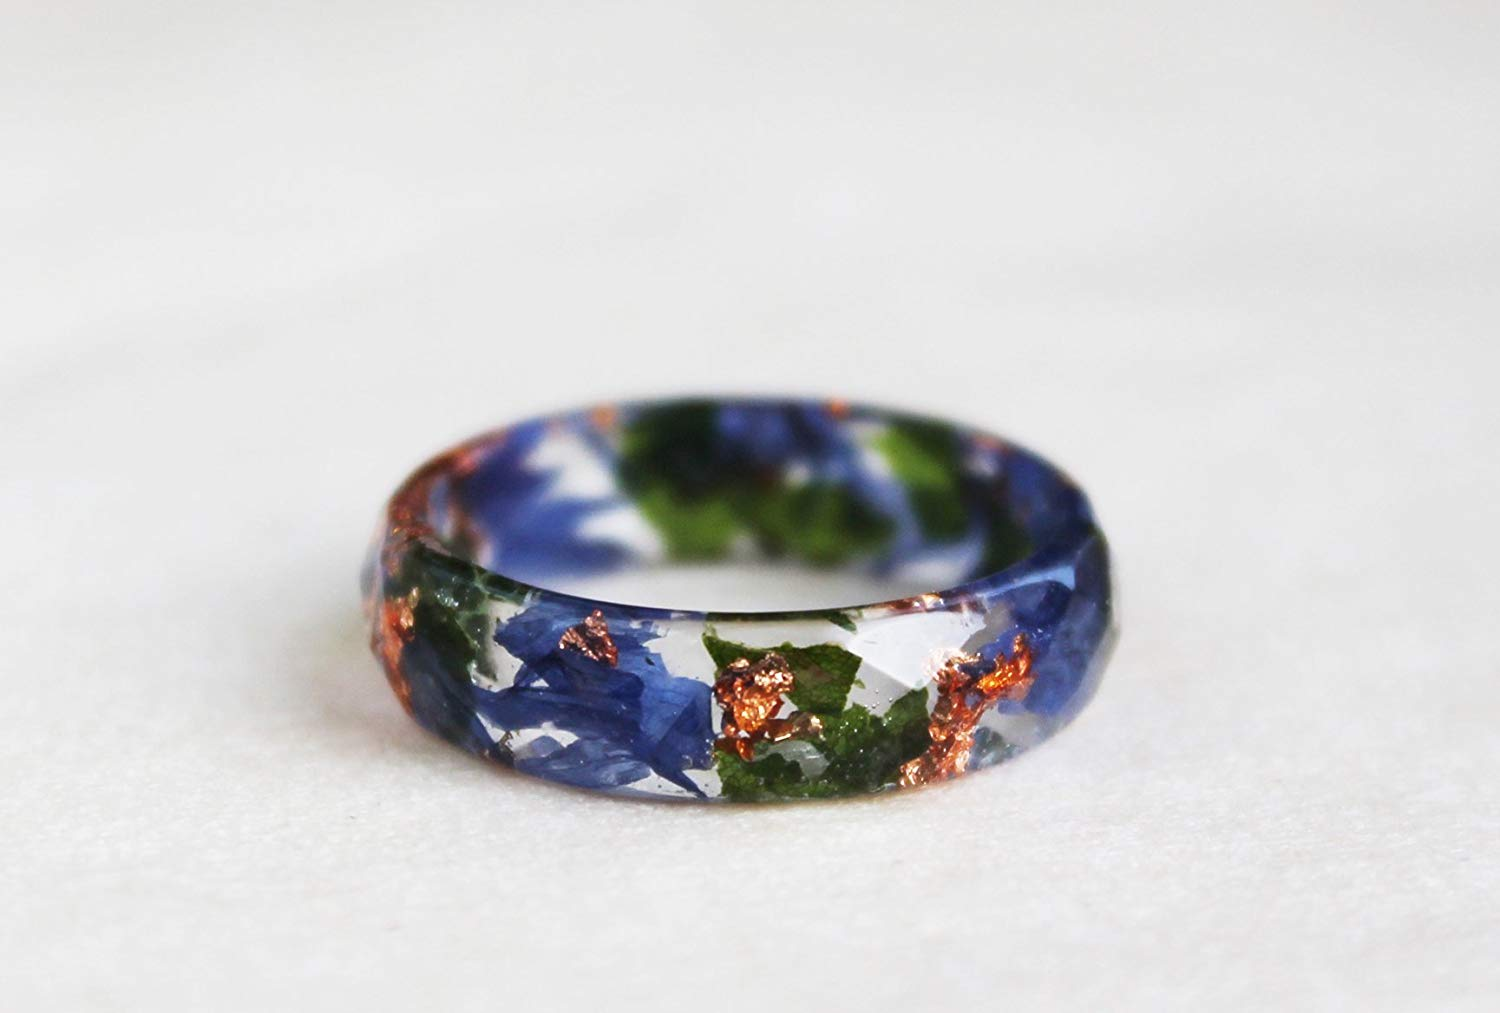 Nature Inspired Resin Ring With Blue Petals, Green Leaves and Copper Flakes